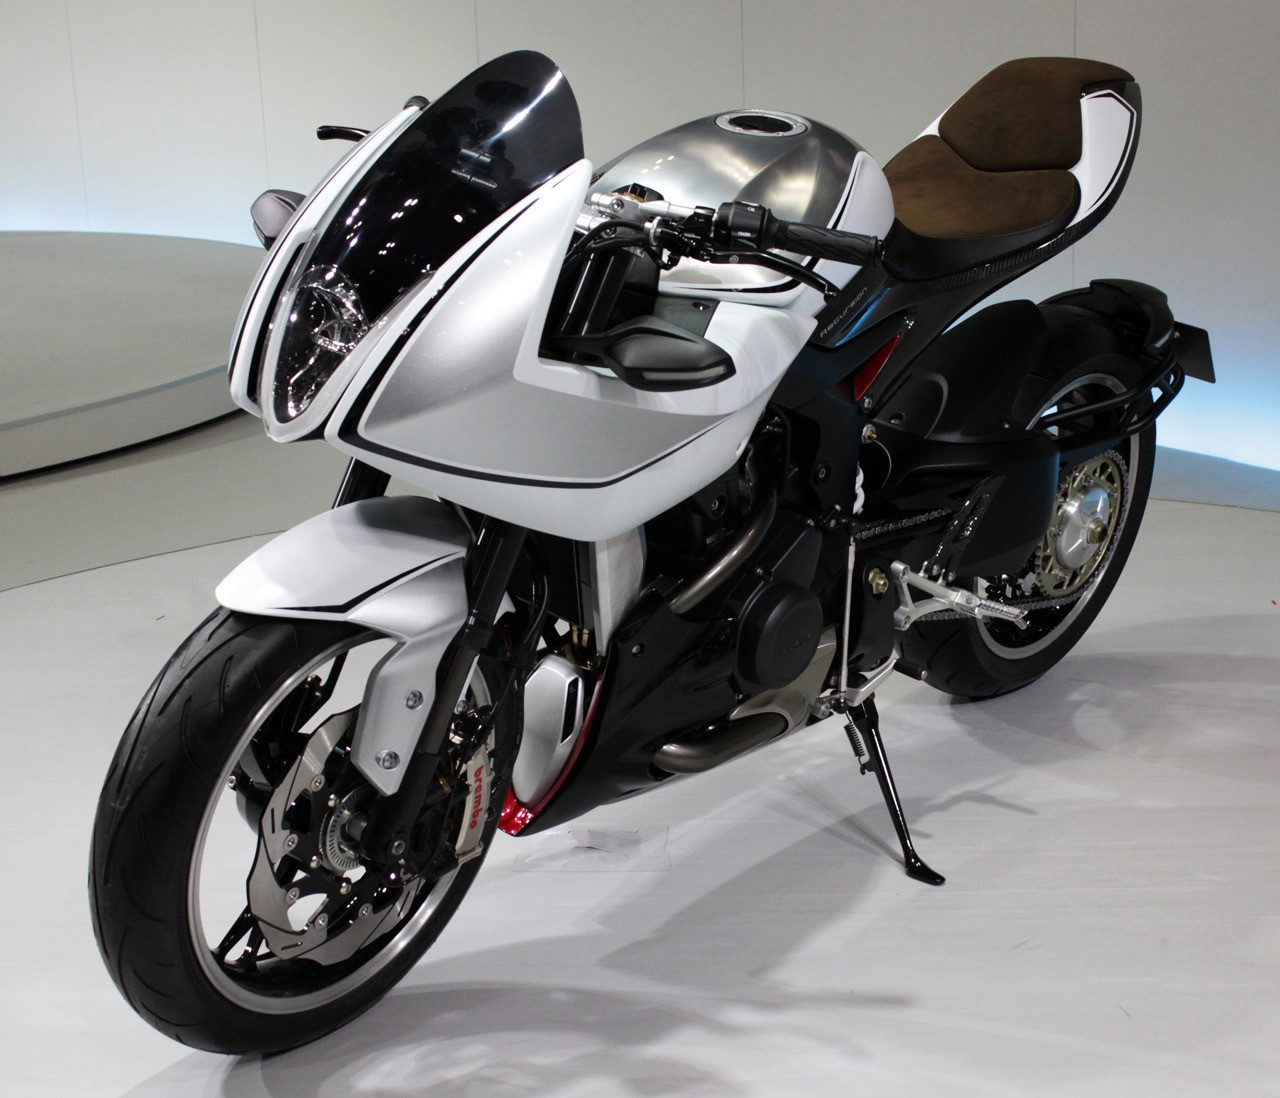 Suzuki Recursion concept